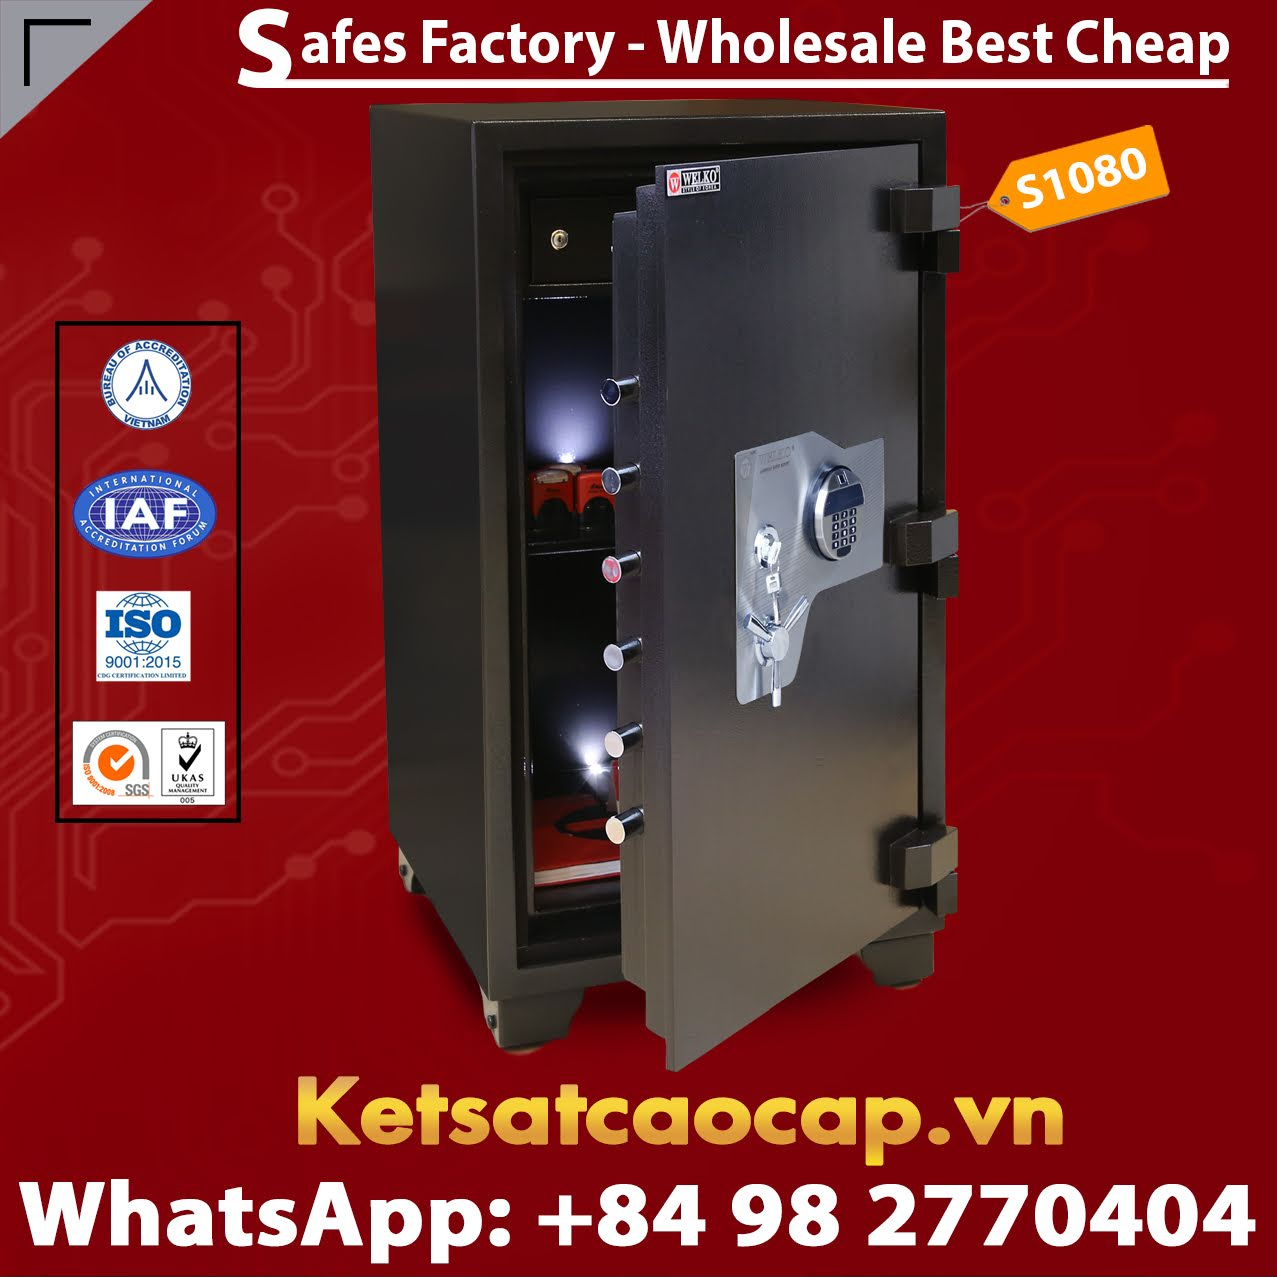 Fashion Design And Fingerprint Electronic Safe Box - New Secure Safe - New Design - High Quality - From WELKO Safes